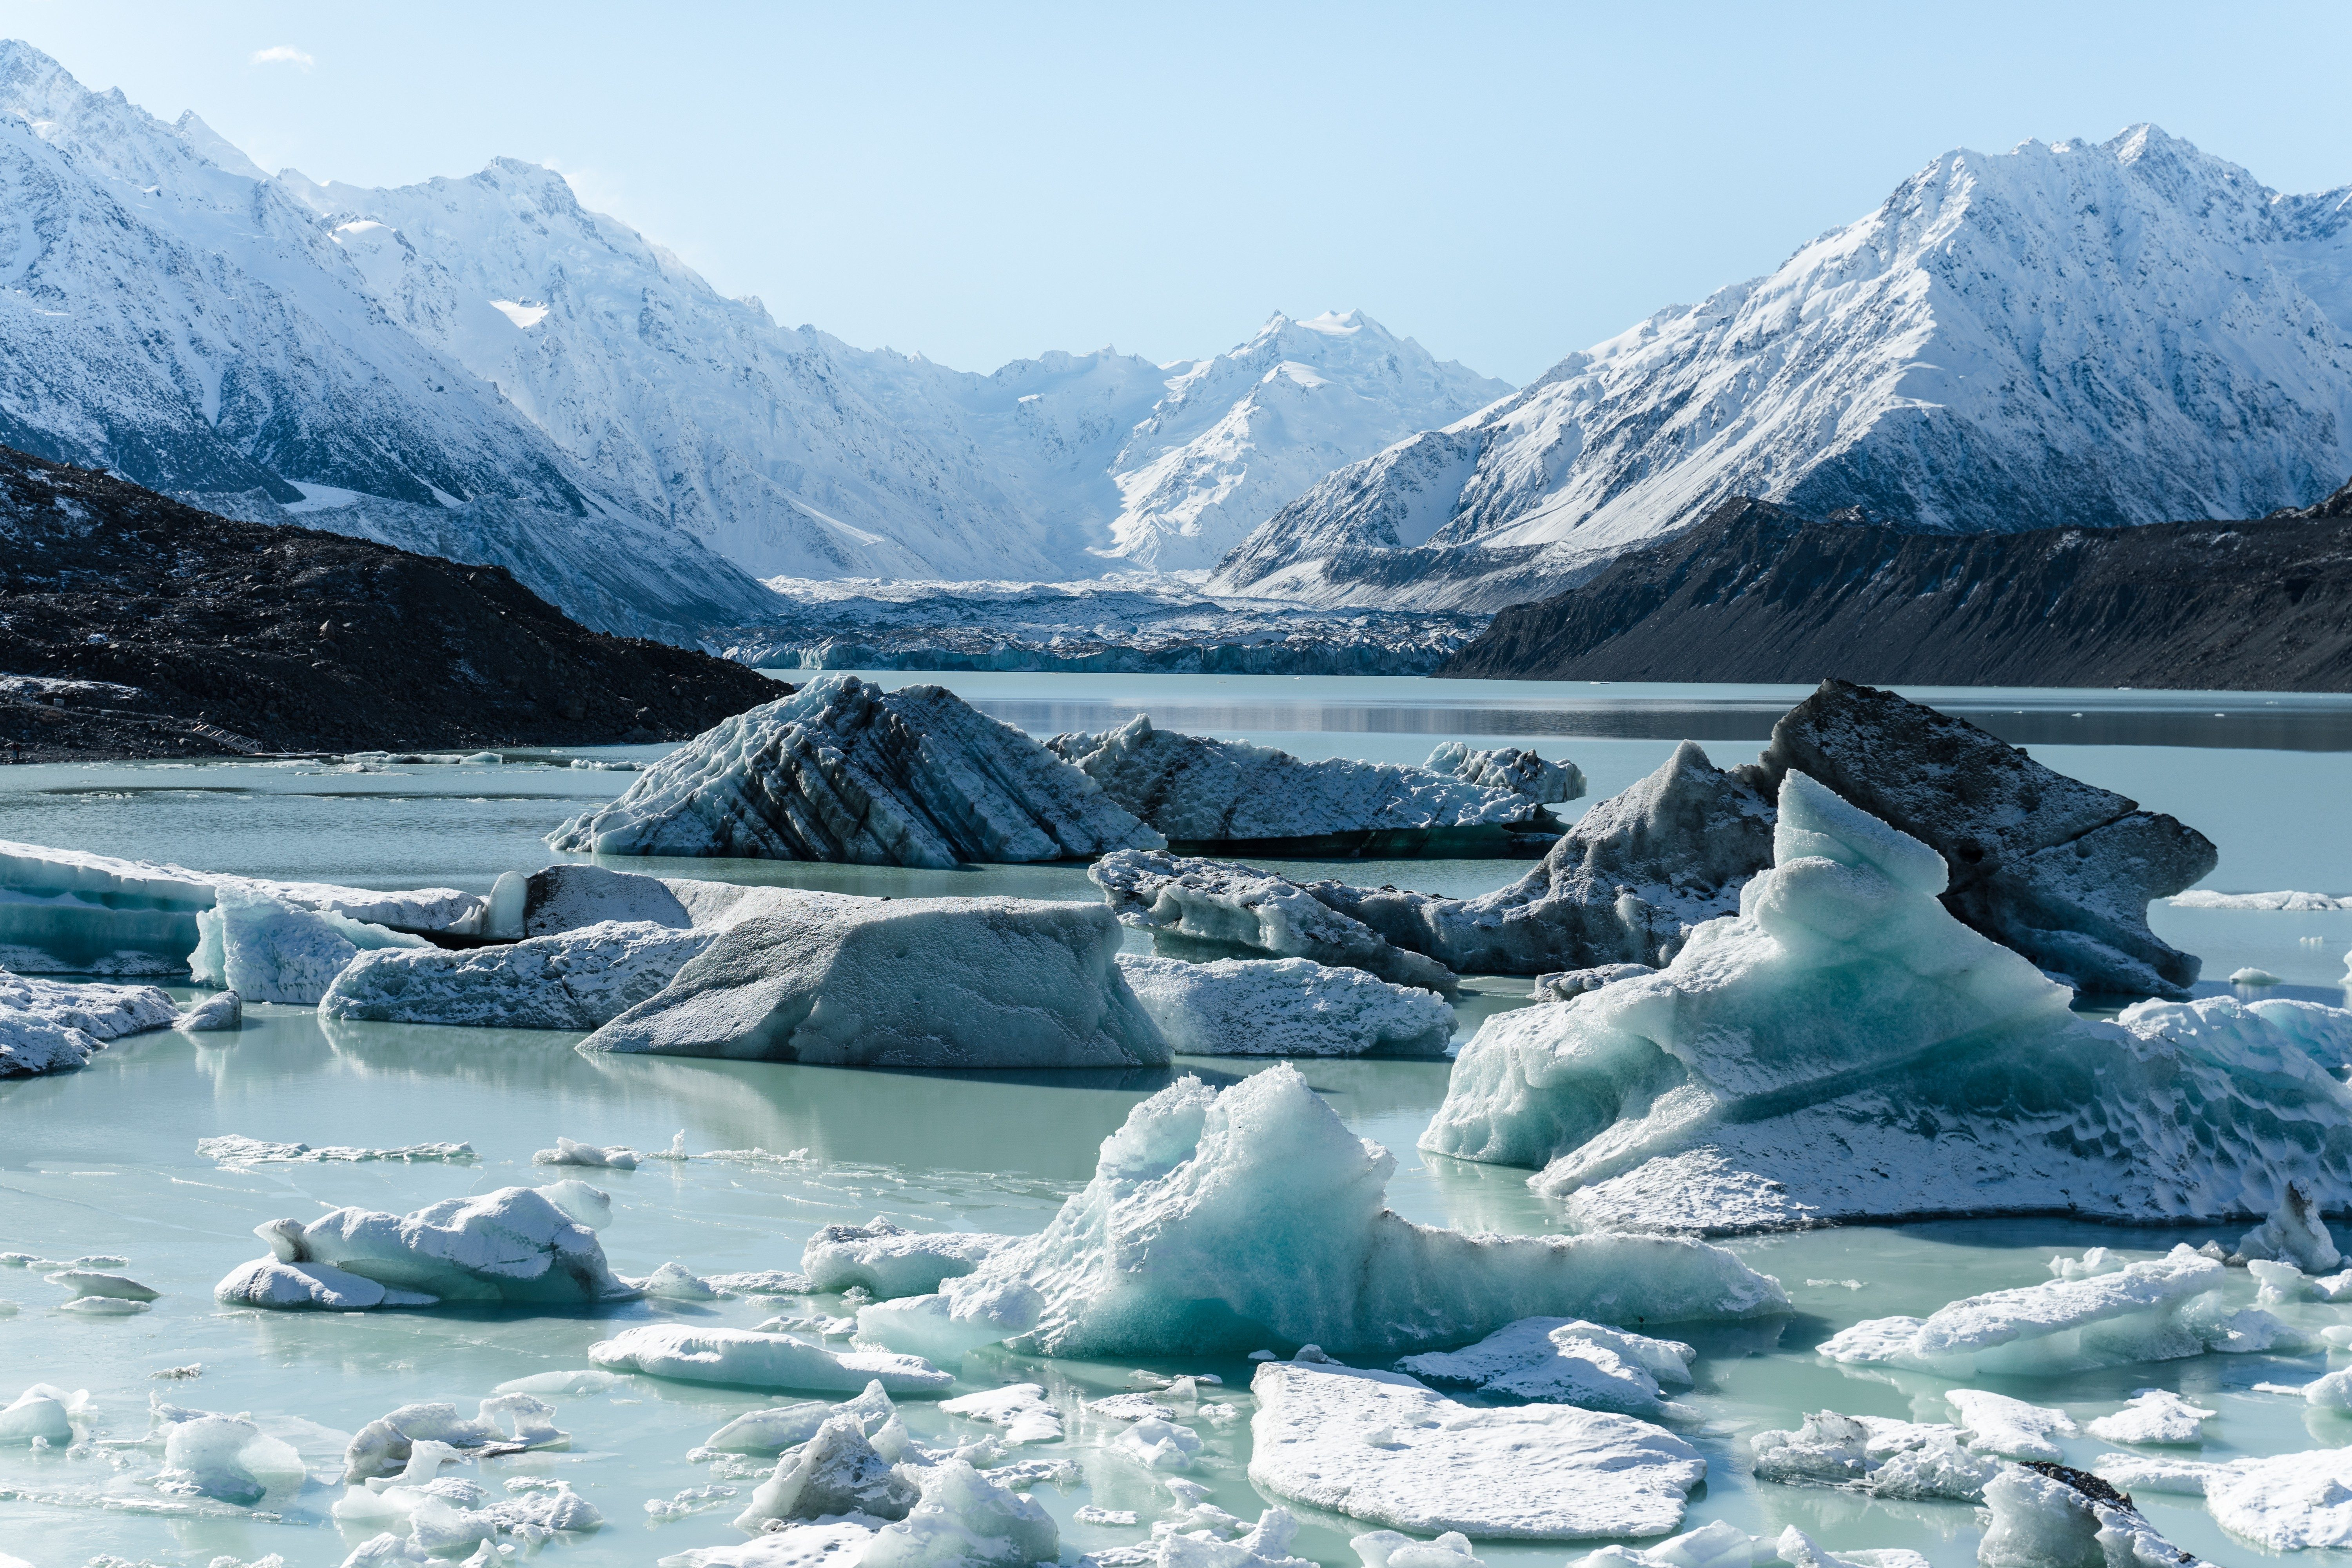 Tasman Glacier and lake with massive icebergs, Mount Cook National Park, New Zealand